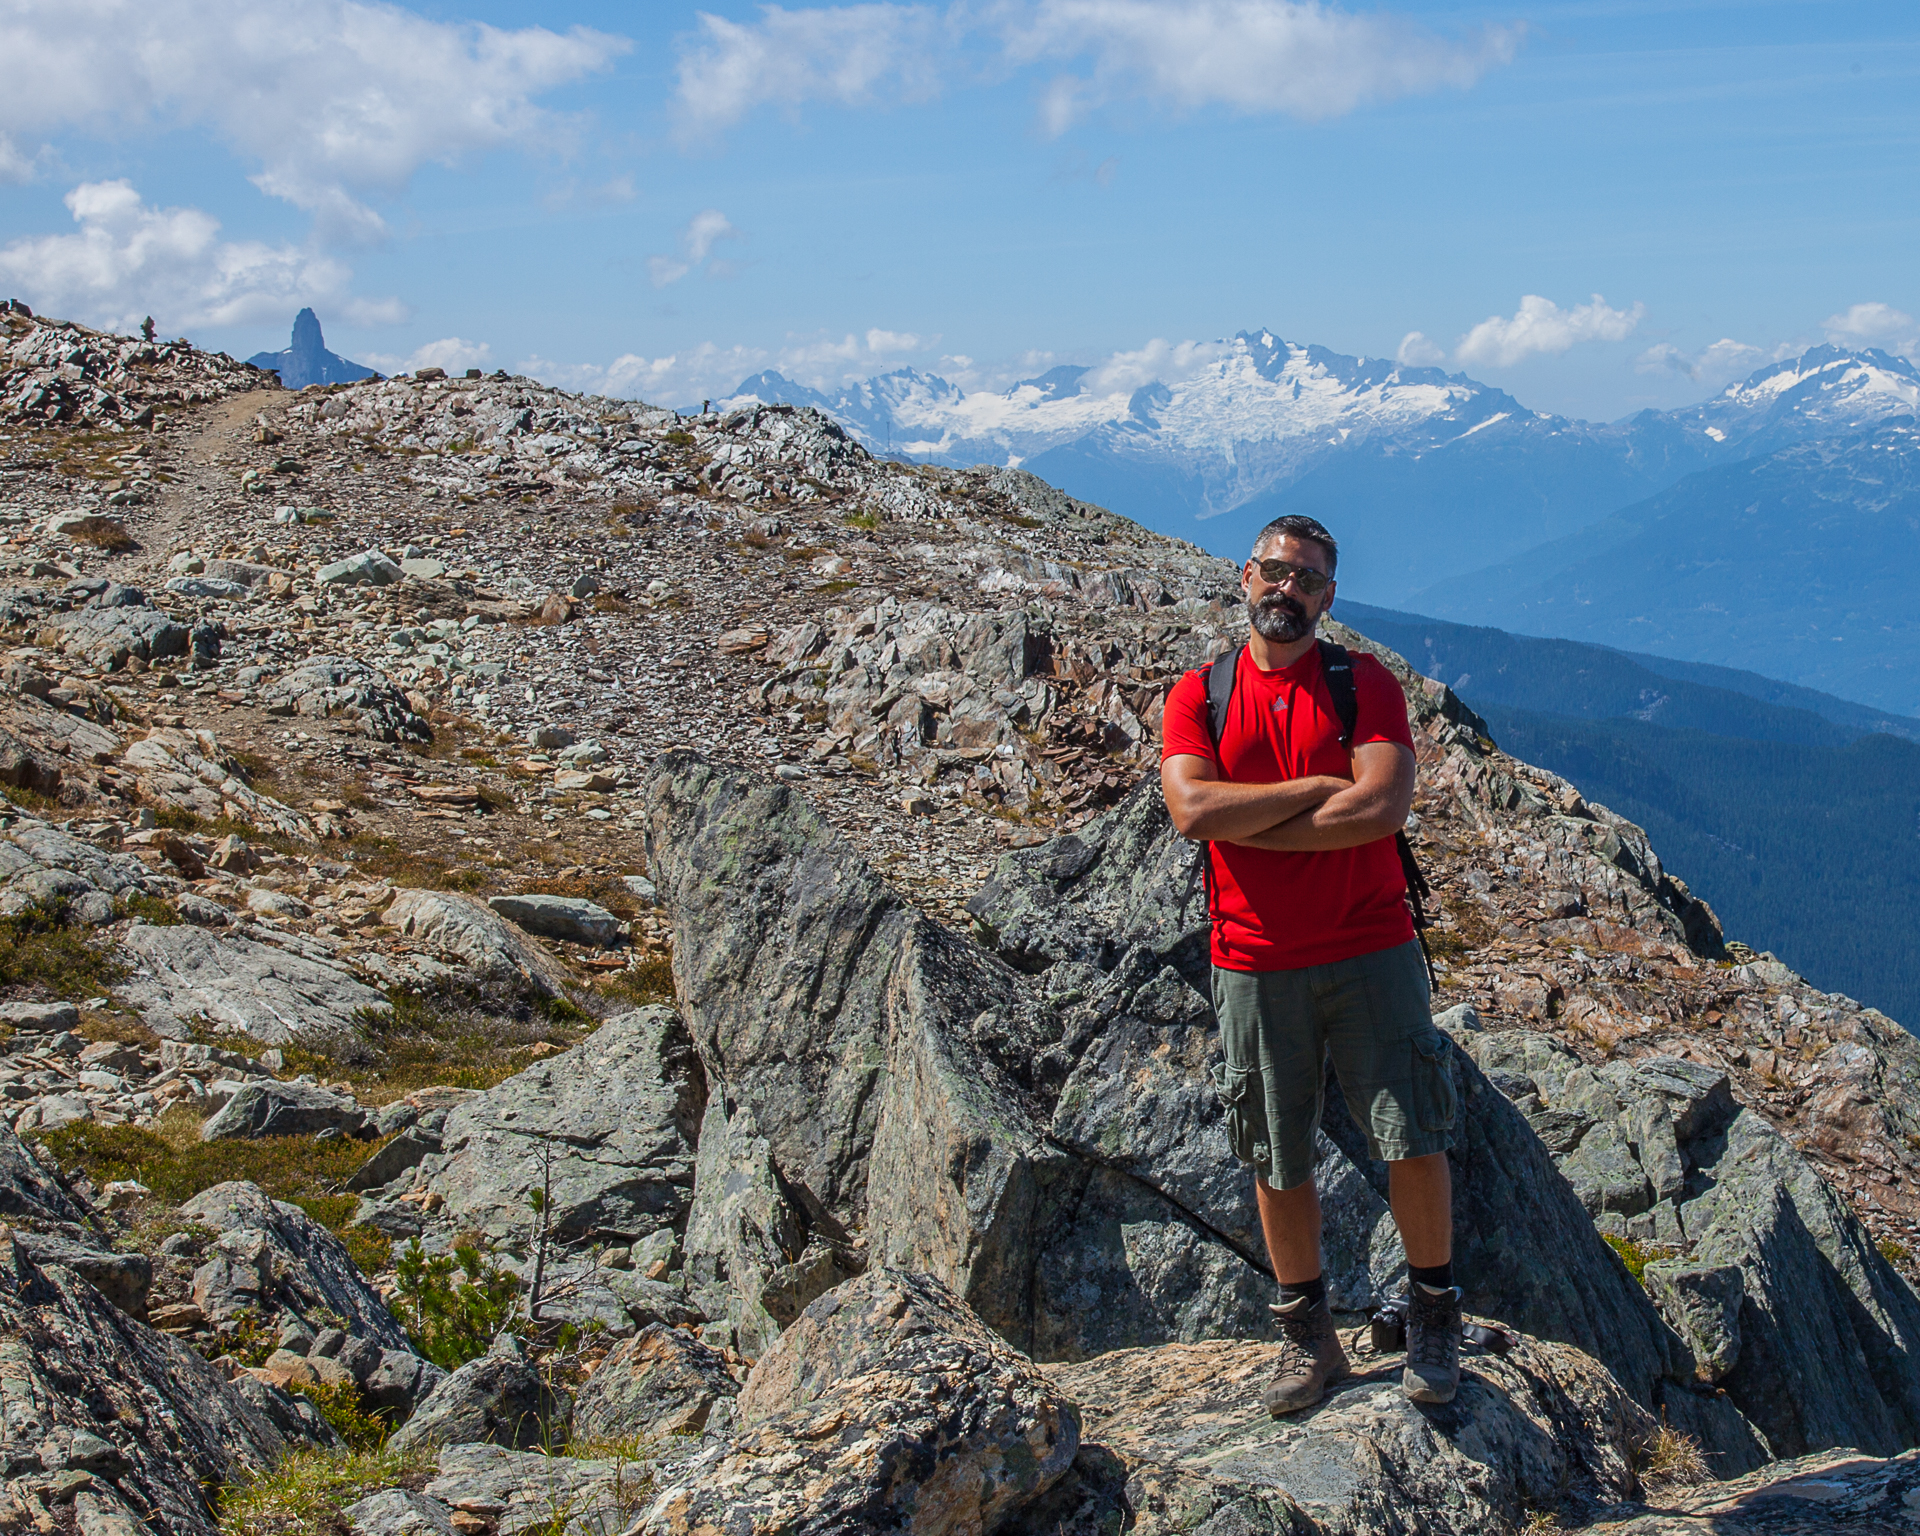 Anthony posing along the early trail.